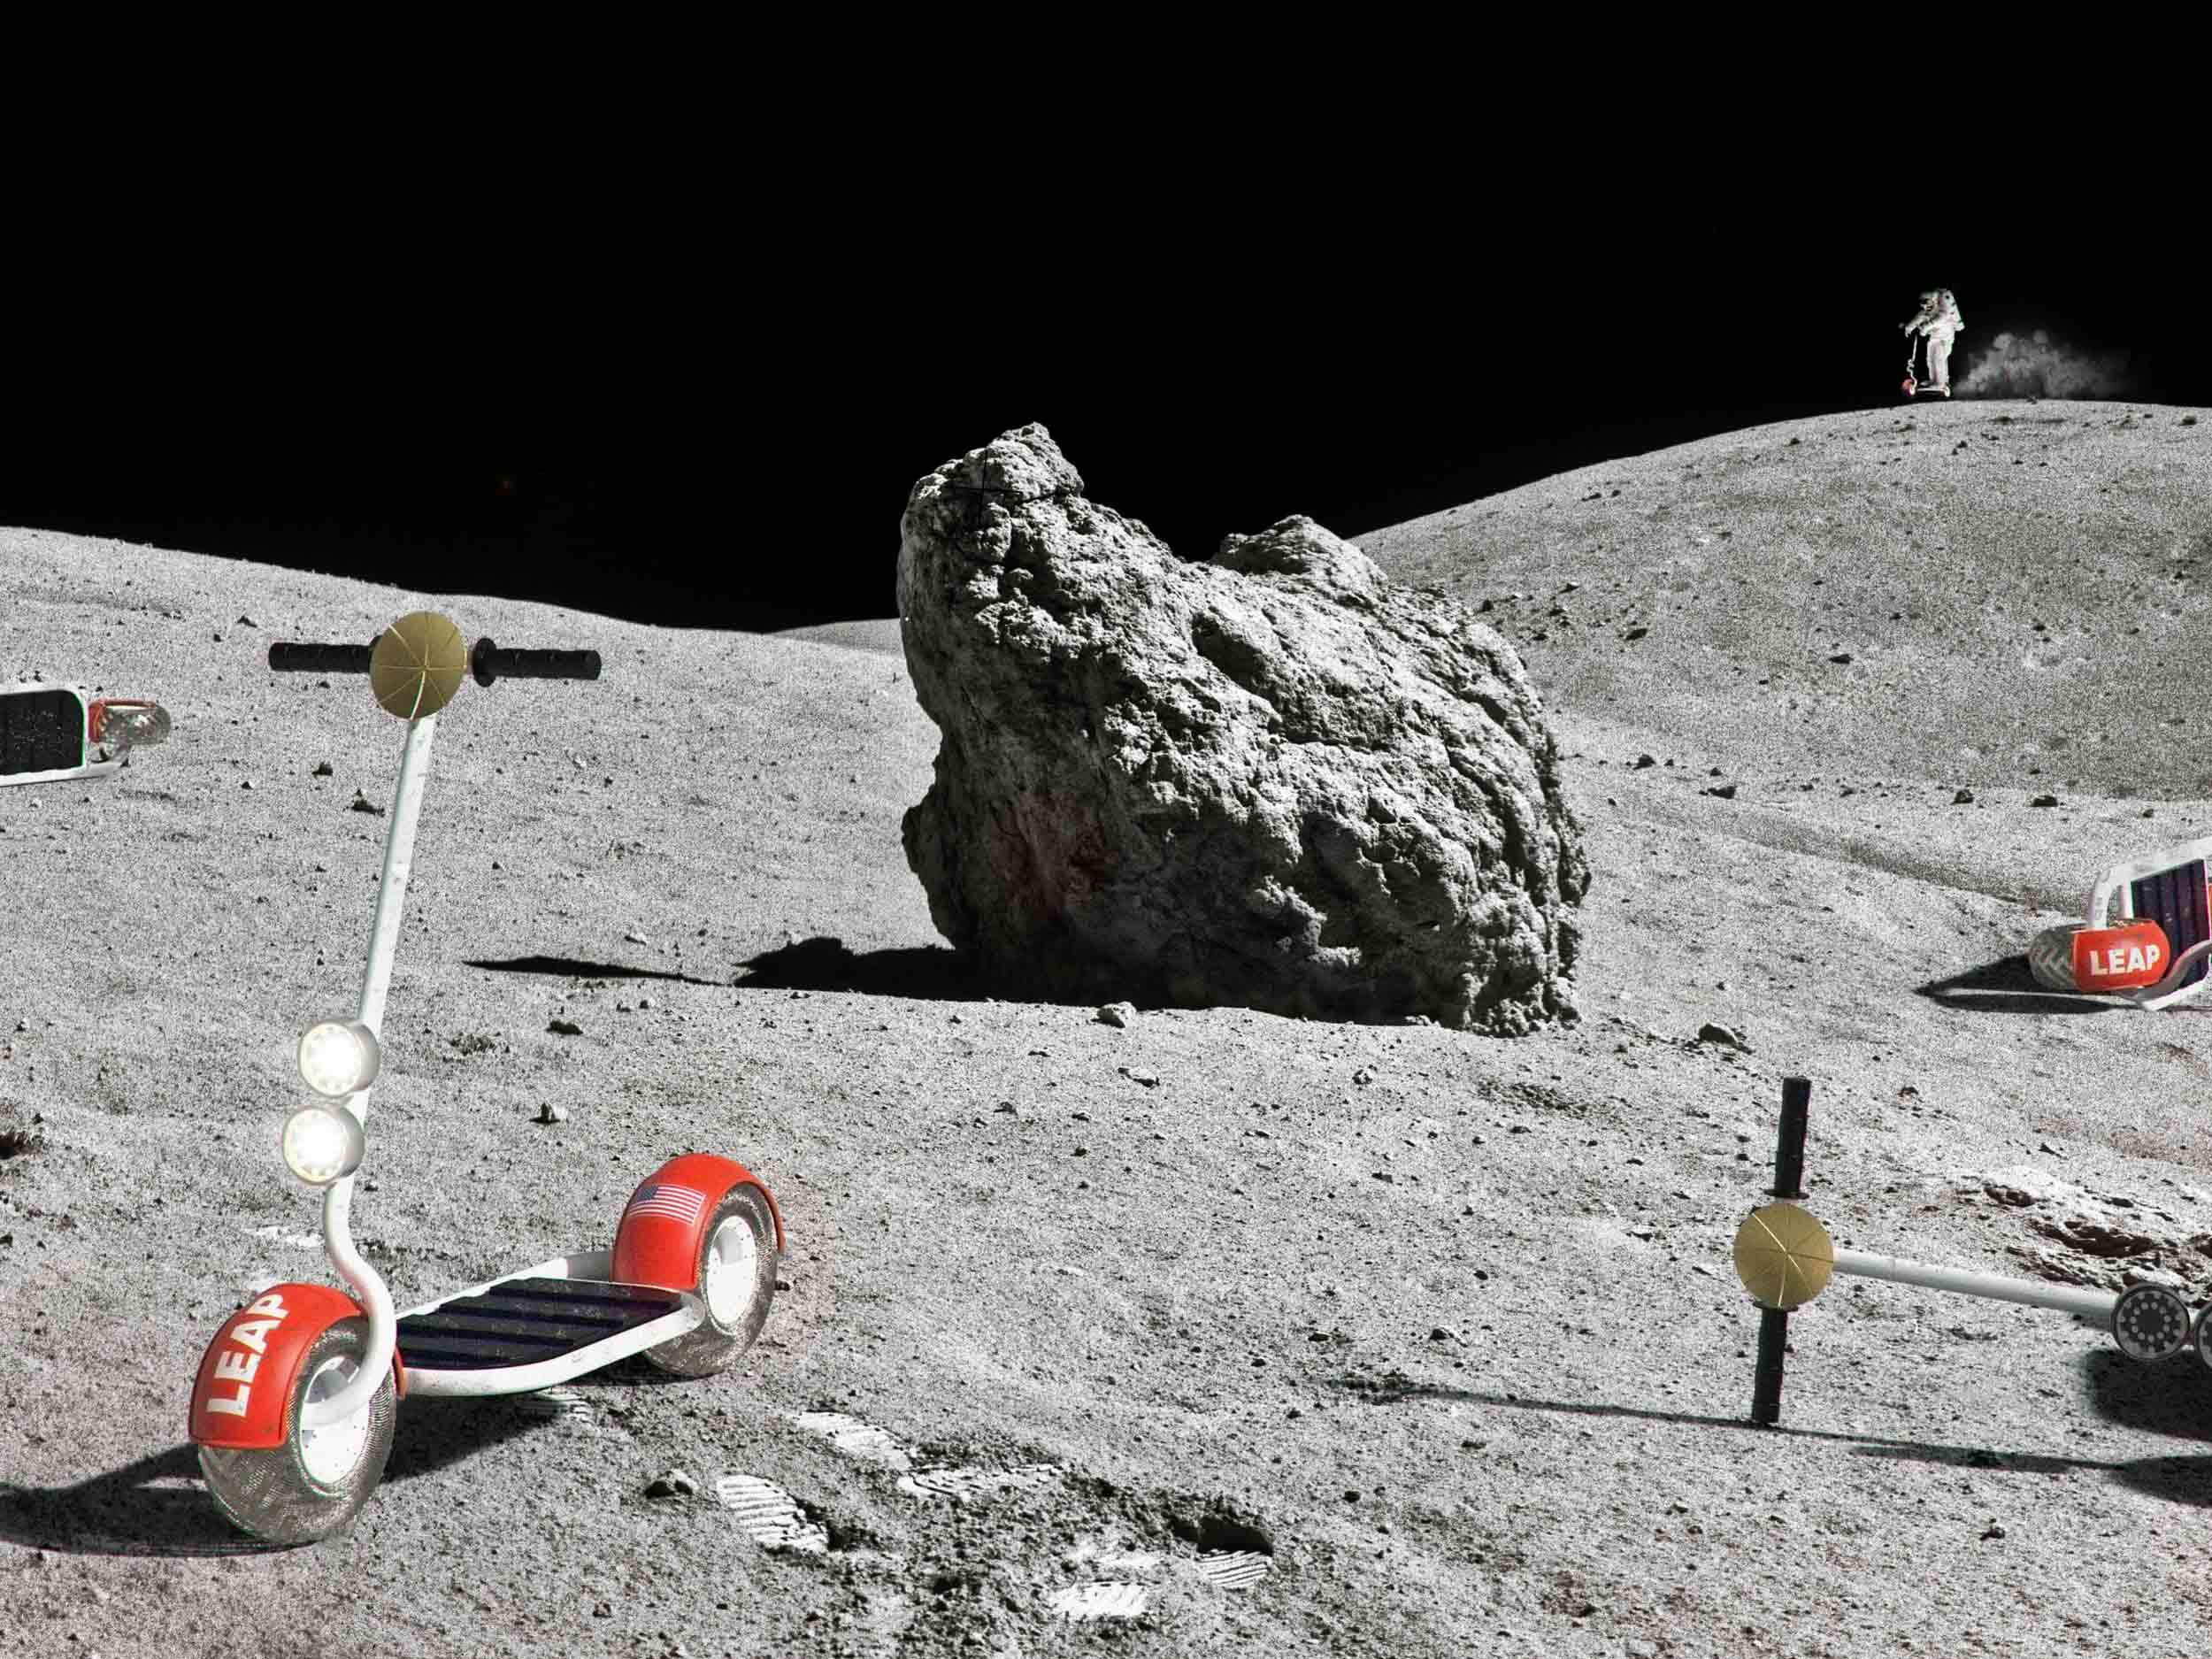 frog design's Moon scooters are one giant 'LEAP' for transportation